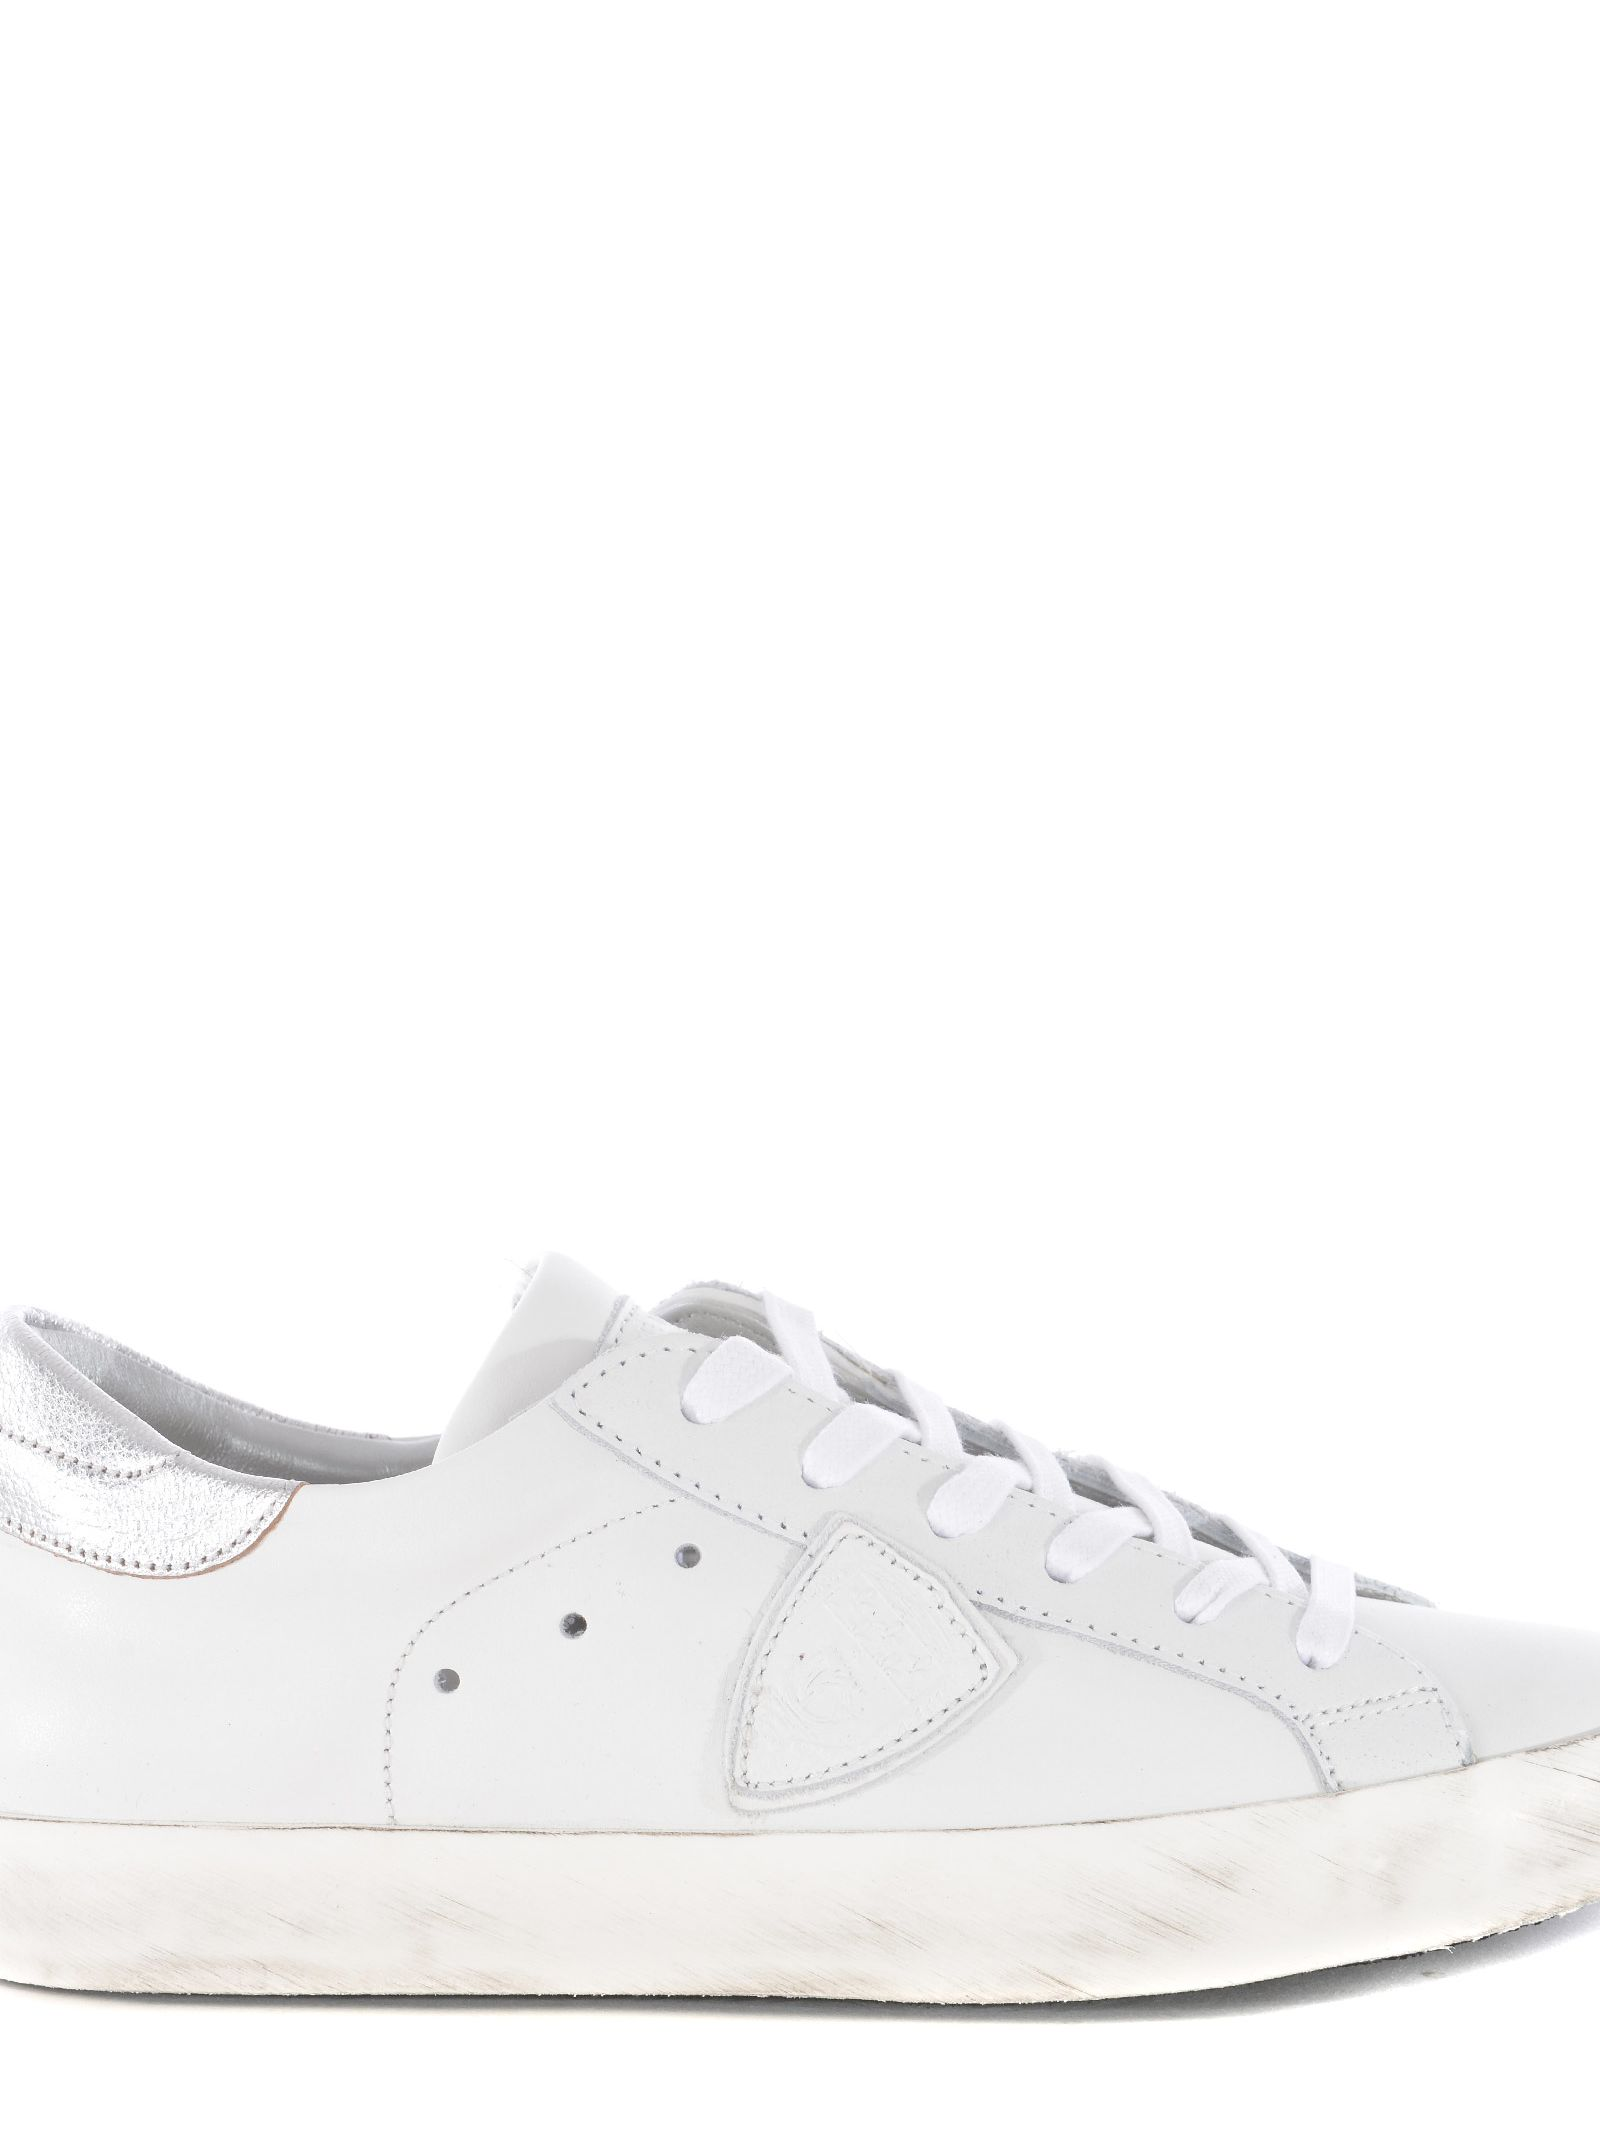 philippe model -  Classic Low-cut Sneakers